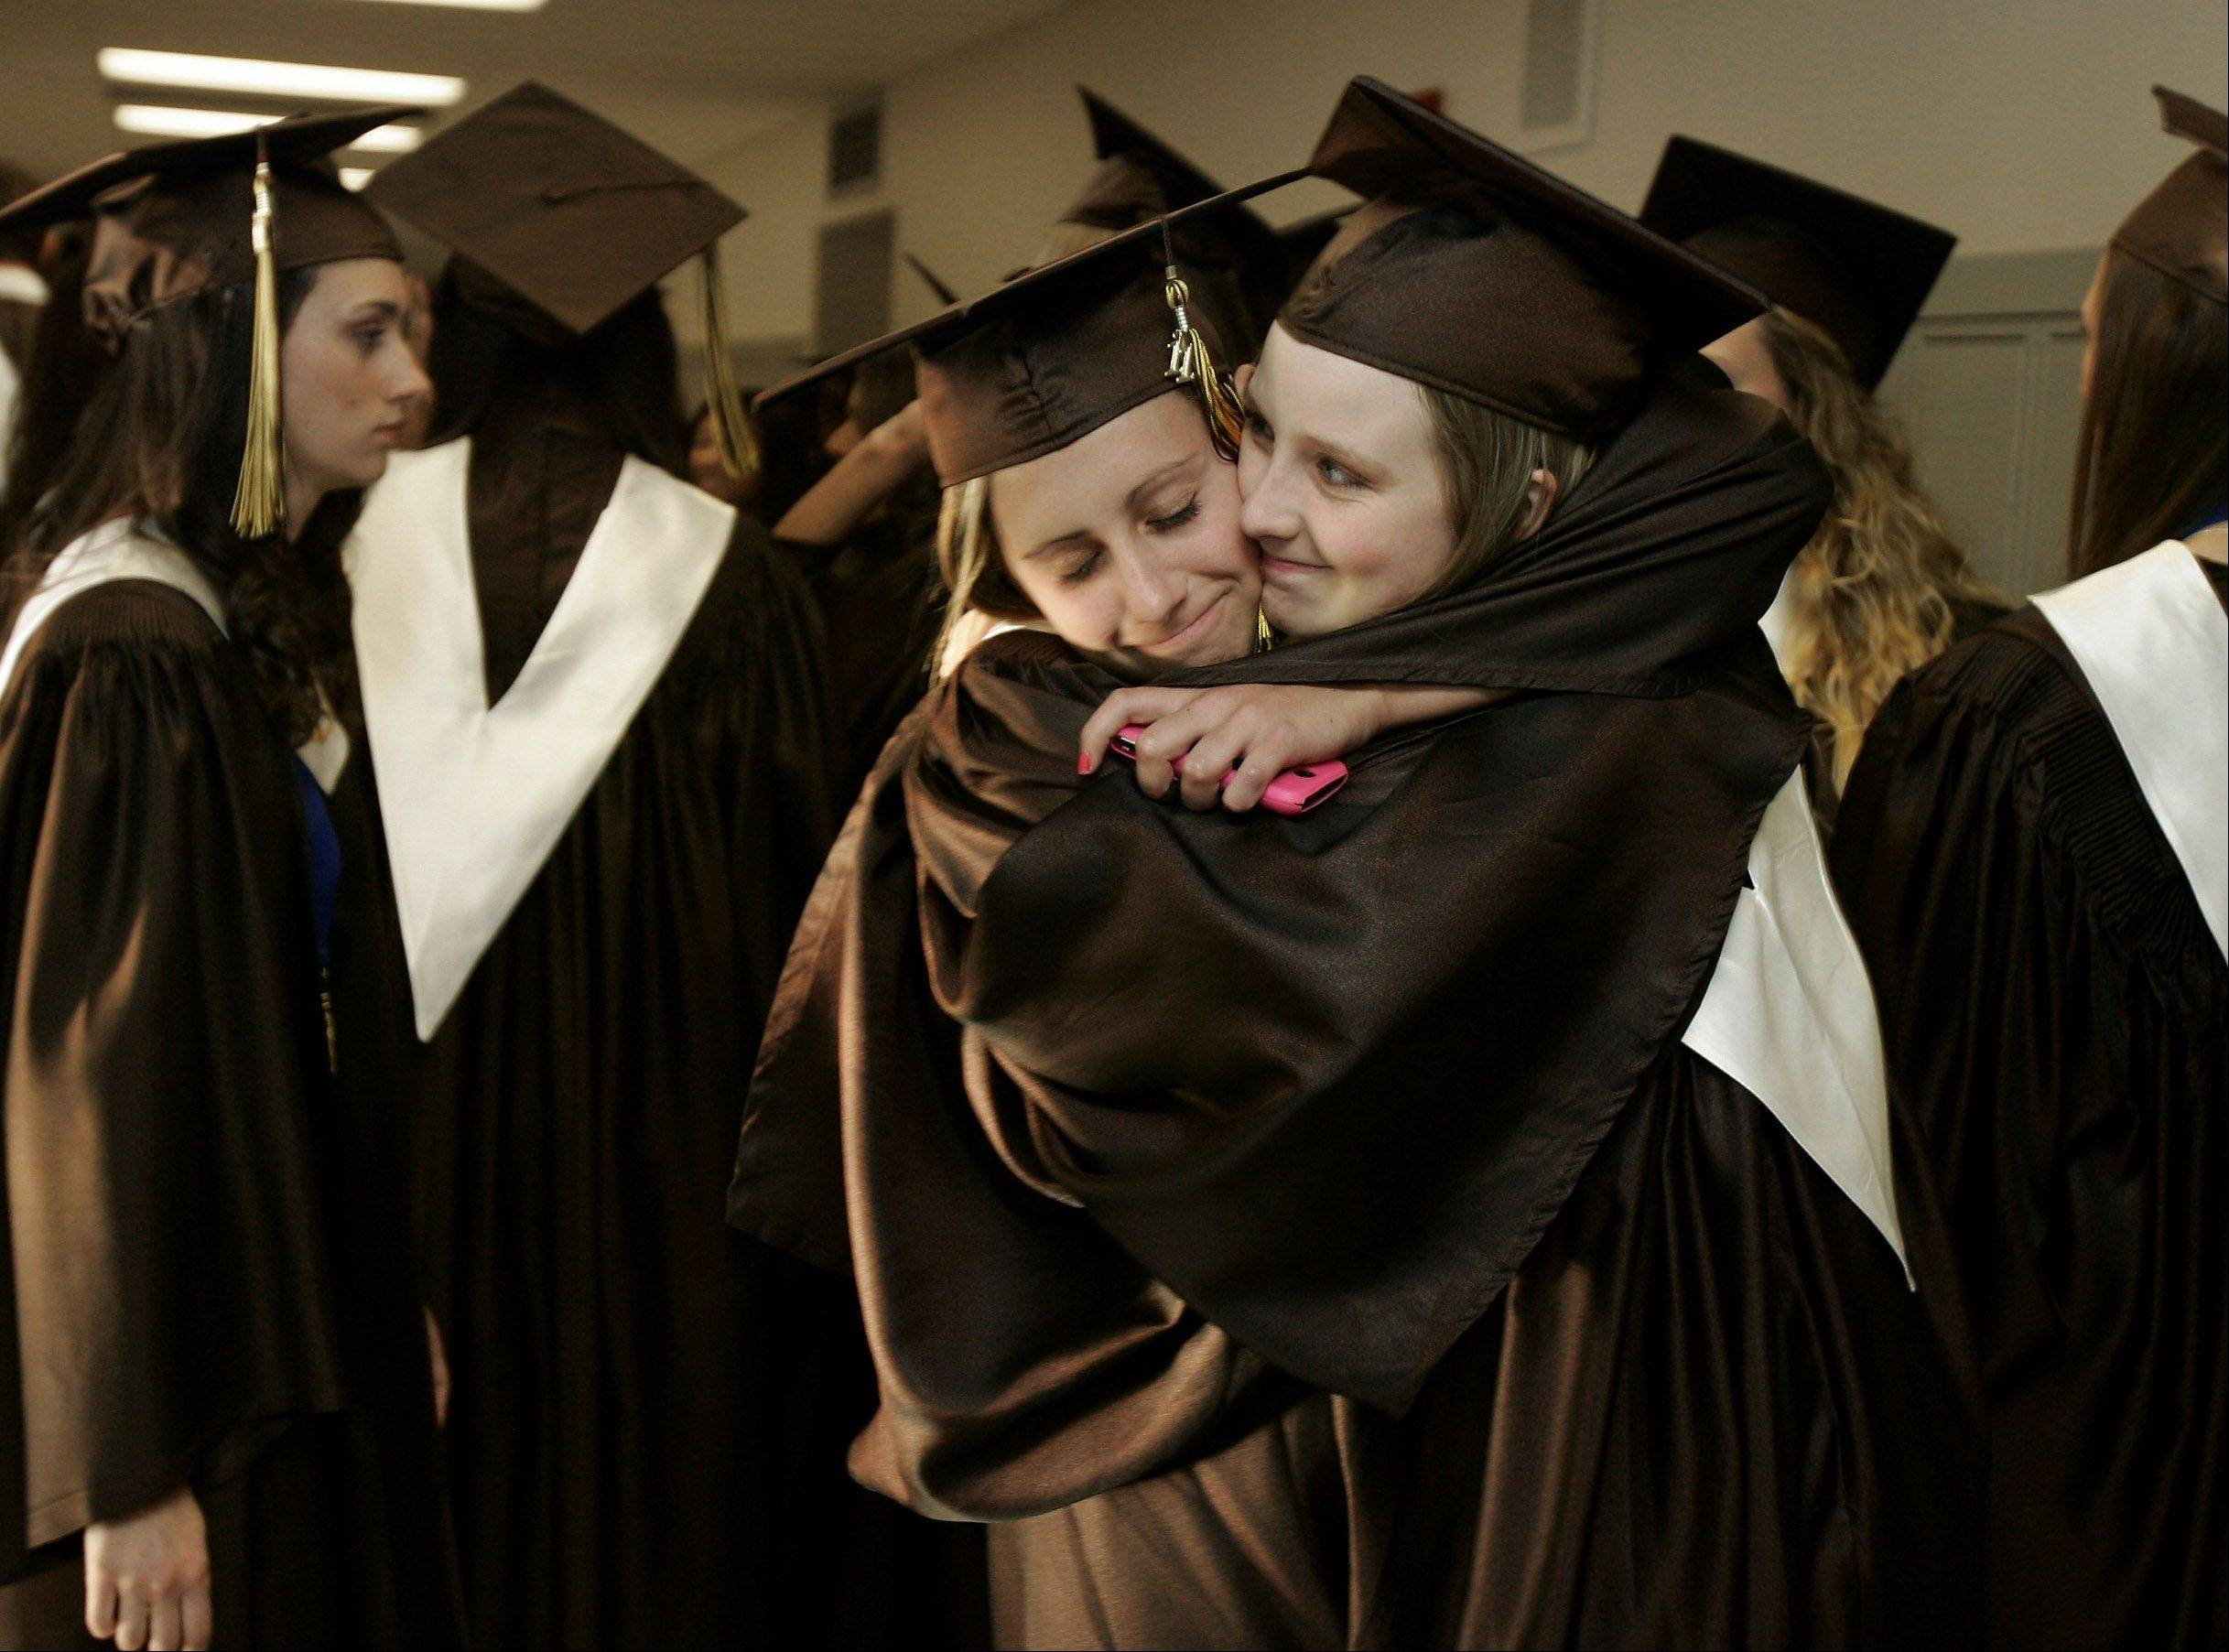 Allison Michel, left, and Lauren Bowles hug in the hall before the start of the commencement ceremony at Carmel Catholic High School Thursday evening. The graduating Class of 2011 consisted of 308 seniors.